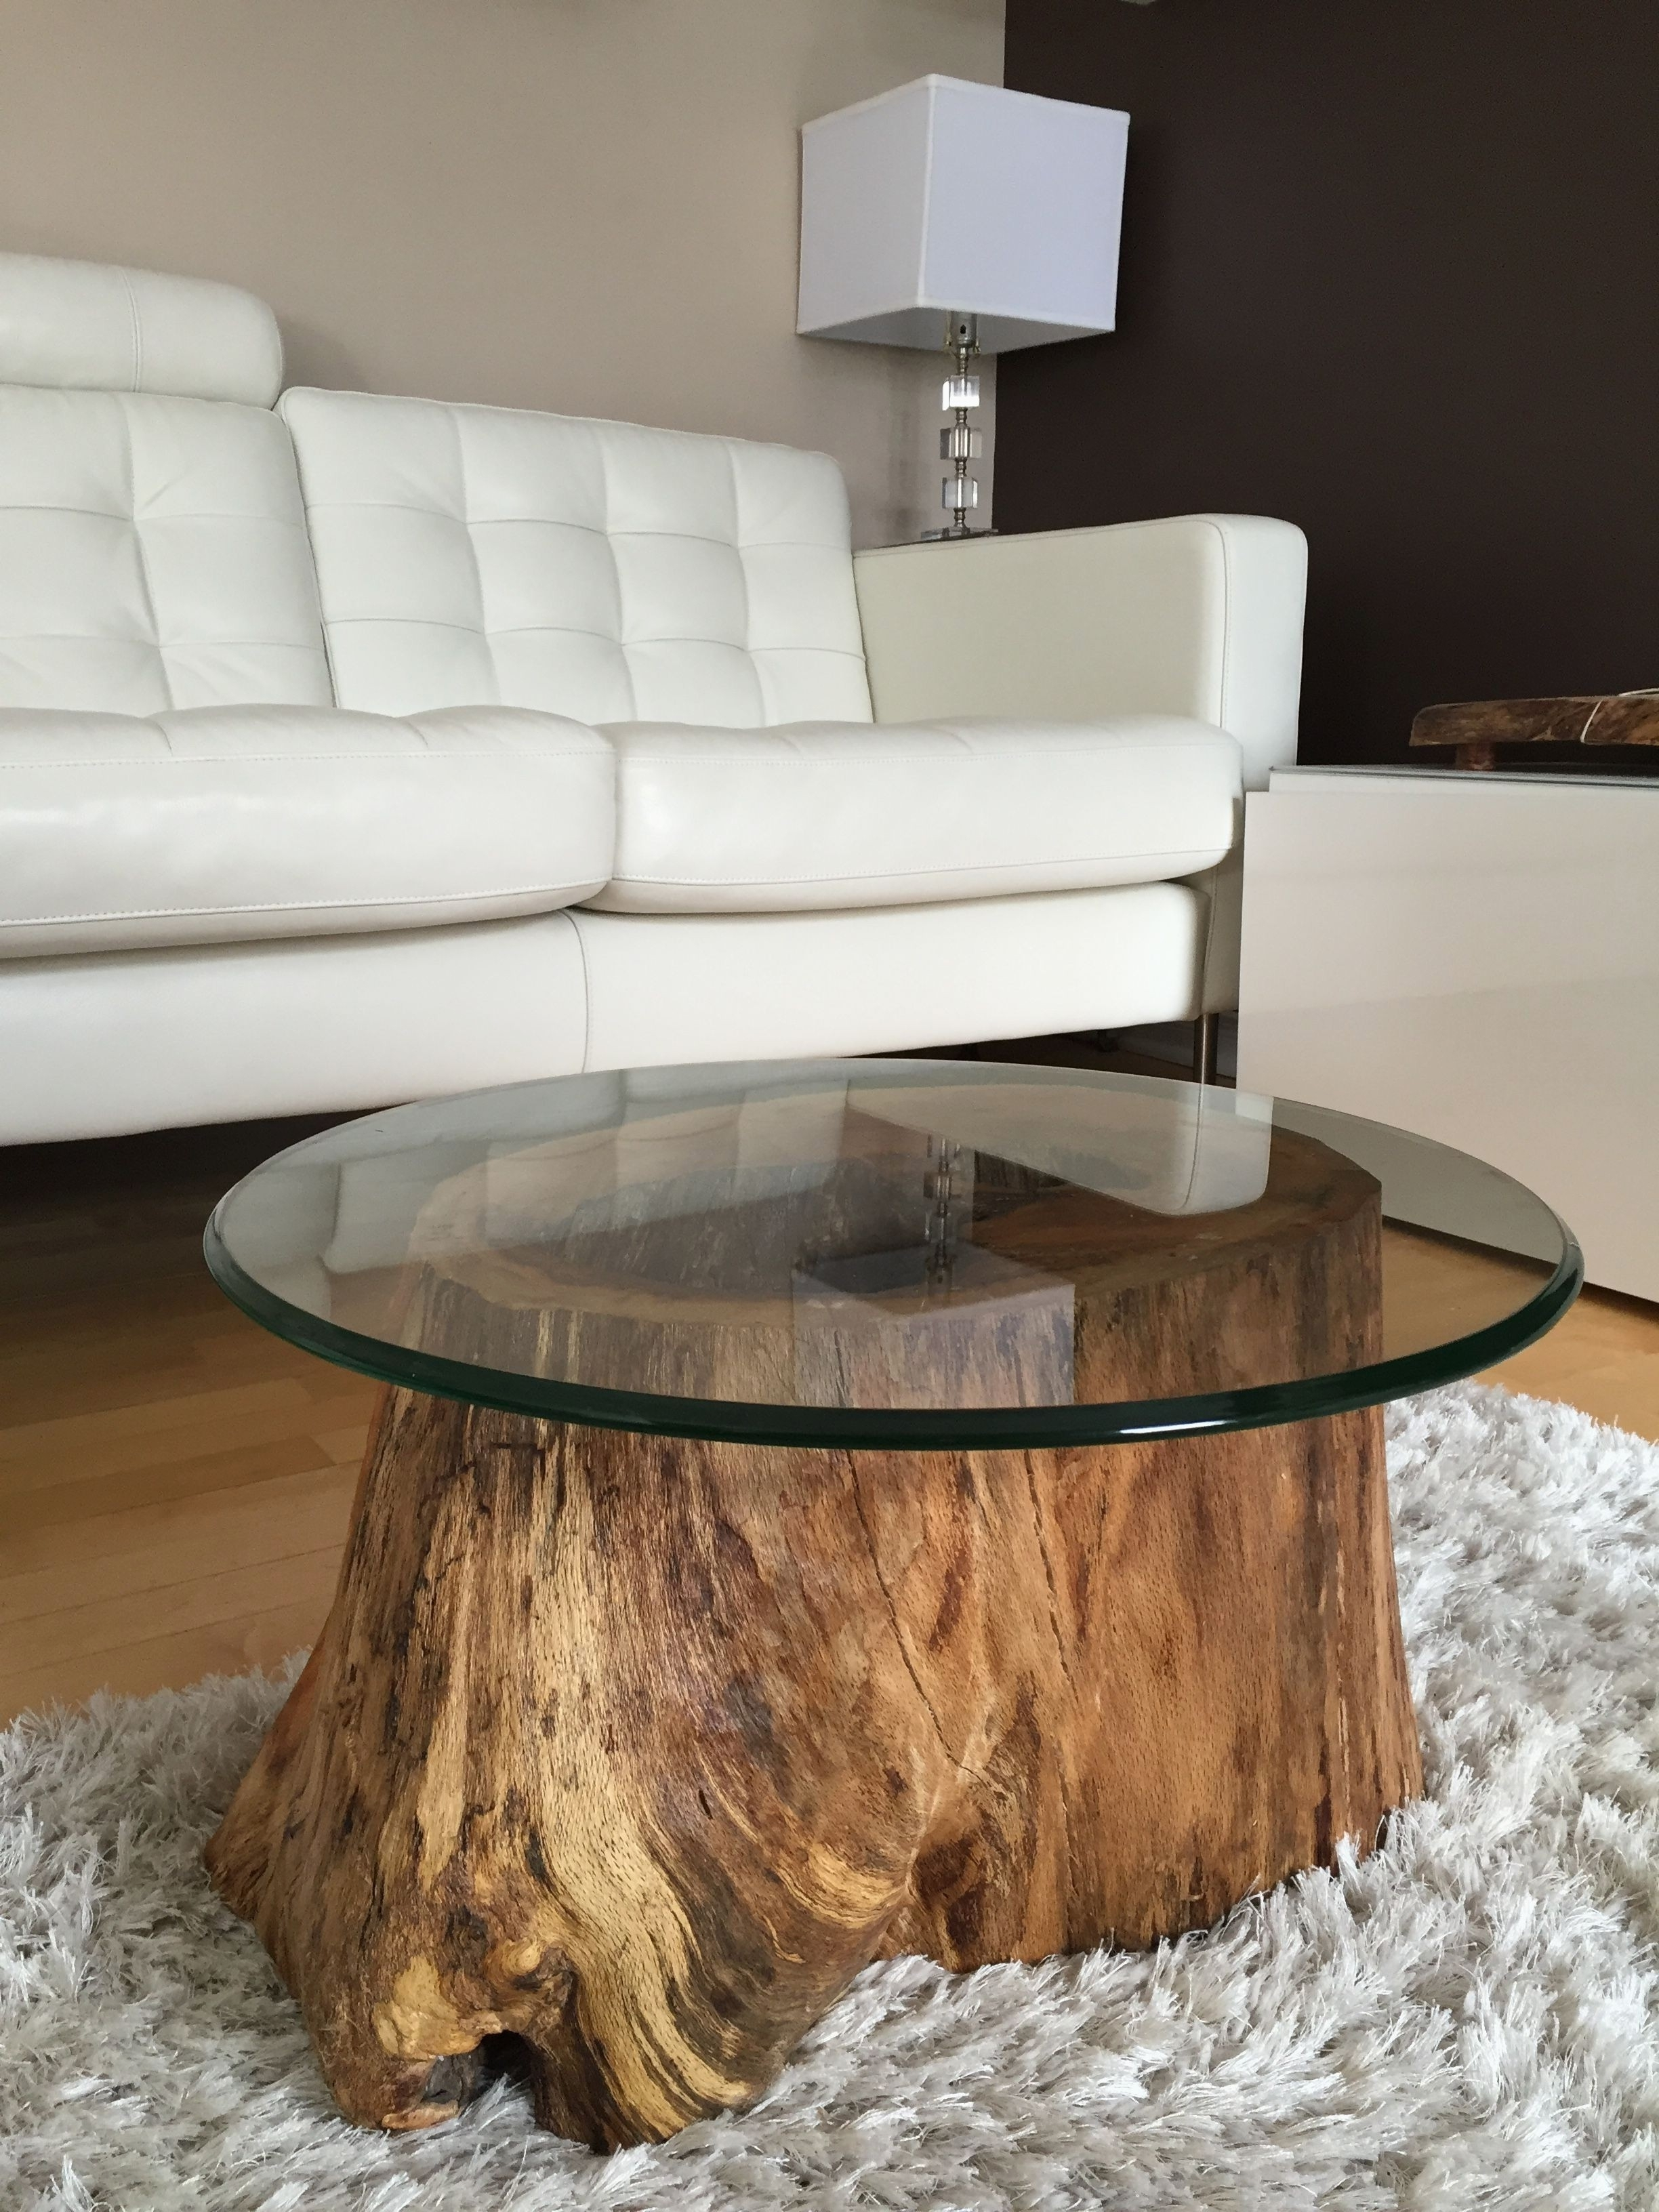 2017 Round Carved Wood Coffee Tables With Regard To Round Carved Wood Coffee Table Advanced Coffee Tables 23 Pinterest (View 20 of 20)